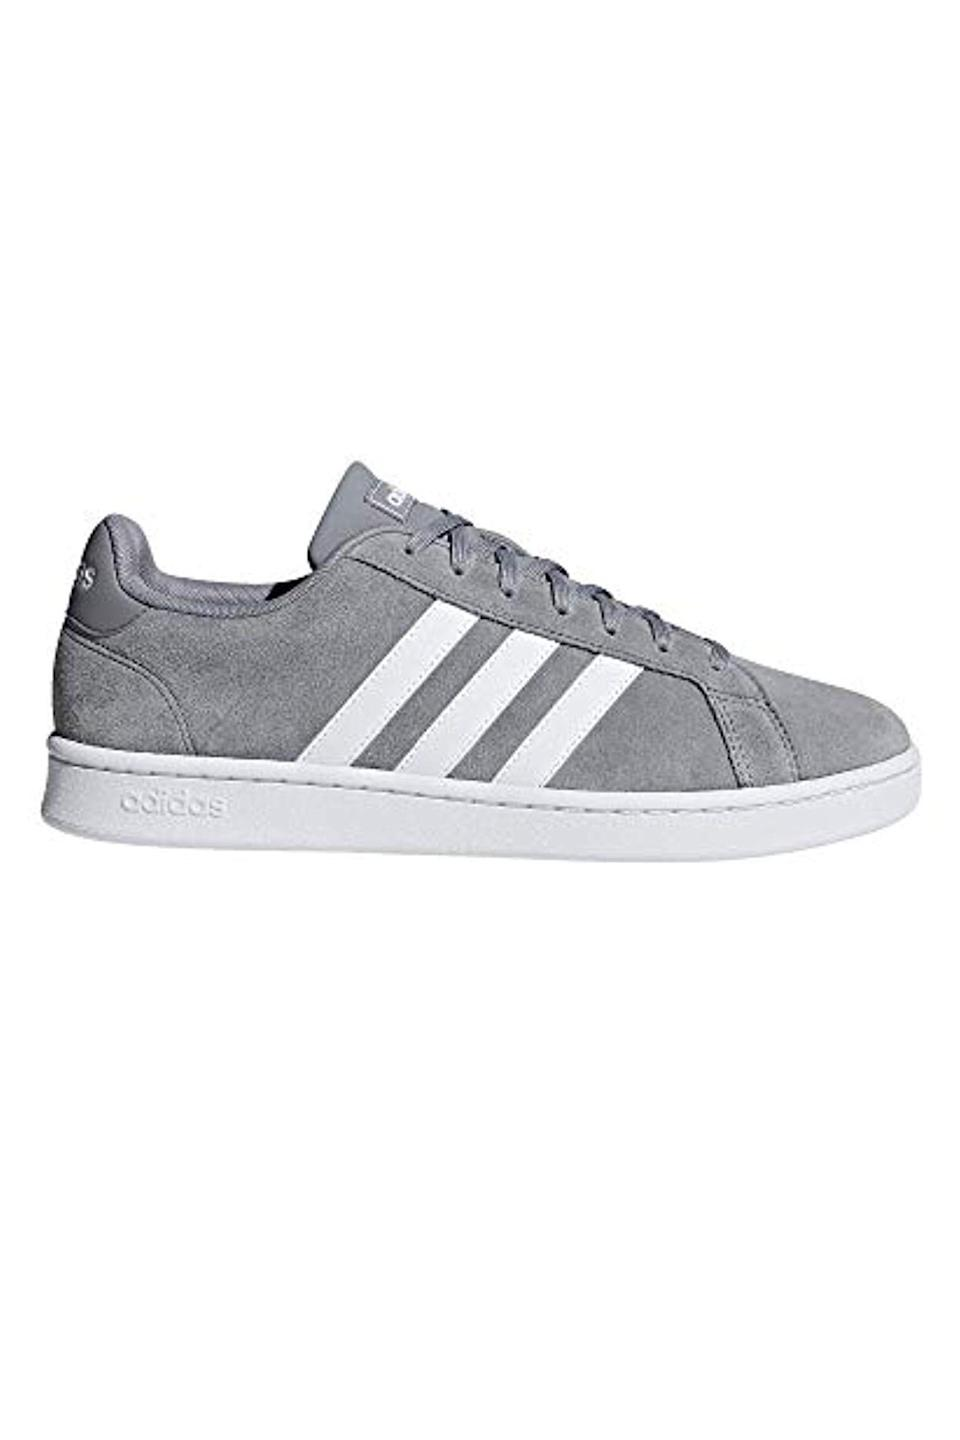 """<p><strong>Adidas</strong></p><p>amazon.com</p><p><strong>$120.00</strong></p><p><a href=""""https://www.amazon.com/dp/B07D9HWVVY?tag=syn-yahoo-20&ascsubtag=%5Bartid%7C10063.g.34824549%5Bsrc%7Cyahoo-us"""" rel=""""nofollow noopener"""" target=""""_blank"""" data-ylk=""""slk:Shop Now"""" class=""""link rapid-noclick-resp"""">Shop Now</a></p><p>If you're shopping for a boyfriend who's an amazing person but just not the best dresser, start with his shoes. Prince Harry has been photographed in a similar pair (Sdidas's Gazelle trainer) in a similar grey, suede color on countless occasions. This color looks sharp with everything.</p>"""